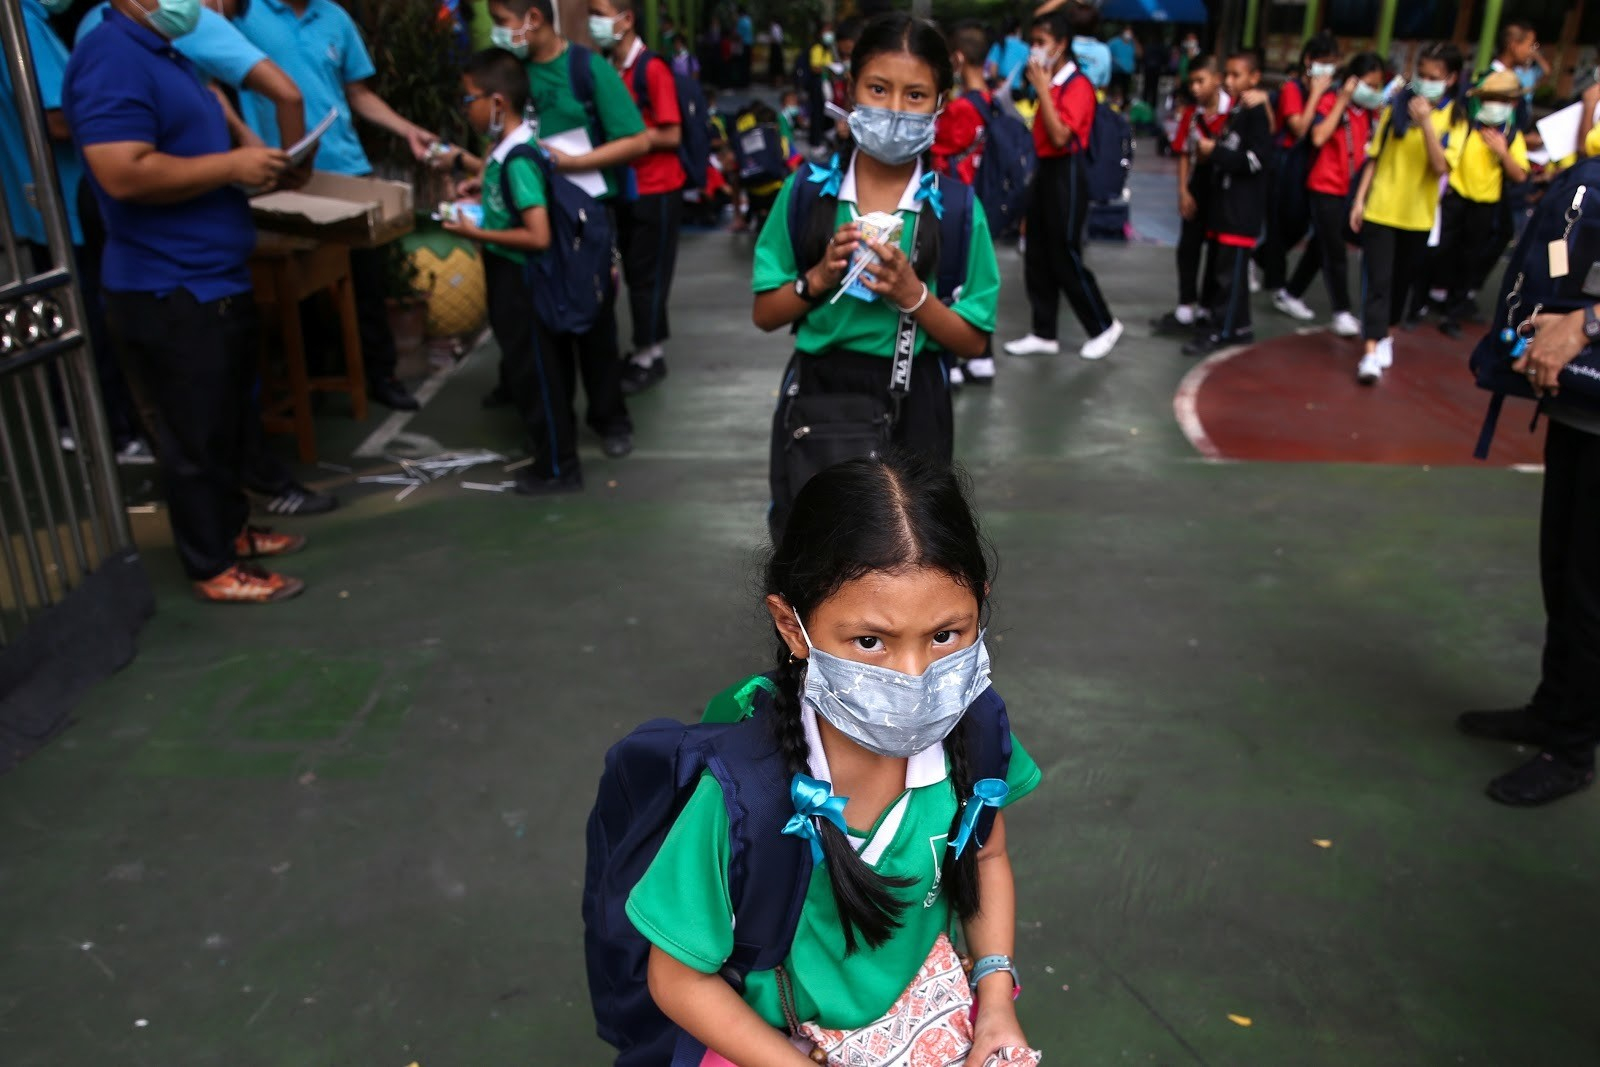 Air pollution in Bangkok, Thailand has forced some schools to close